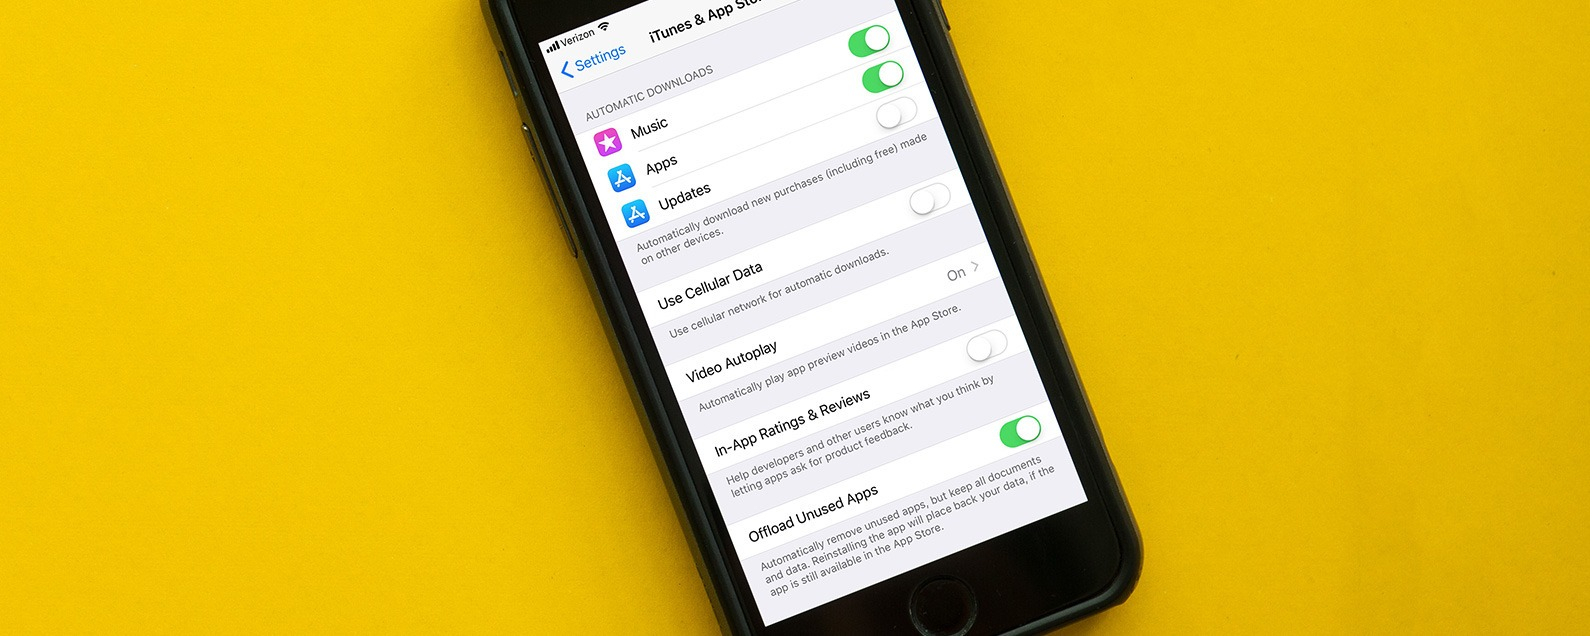 How to Disable In-App Ratings & Review Pop-Ups on Your iPhone